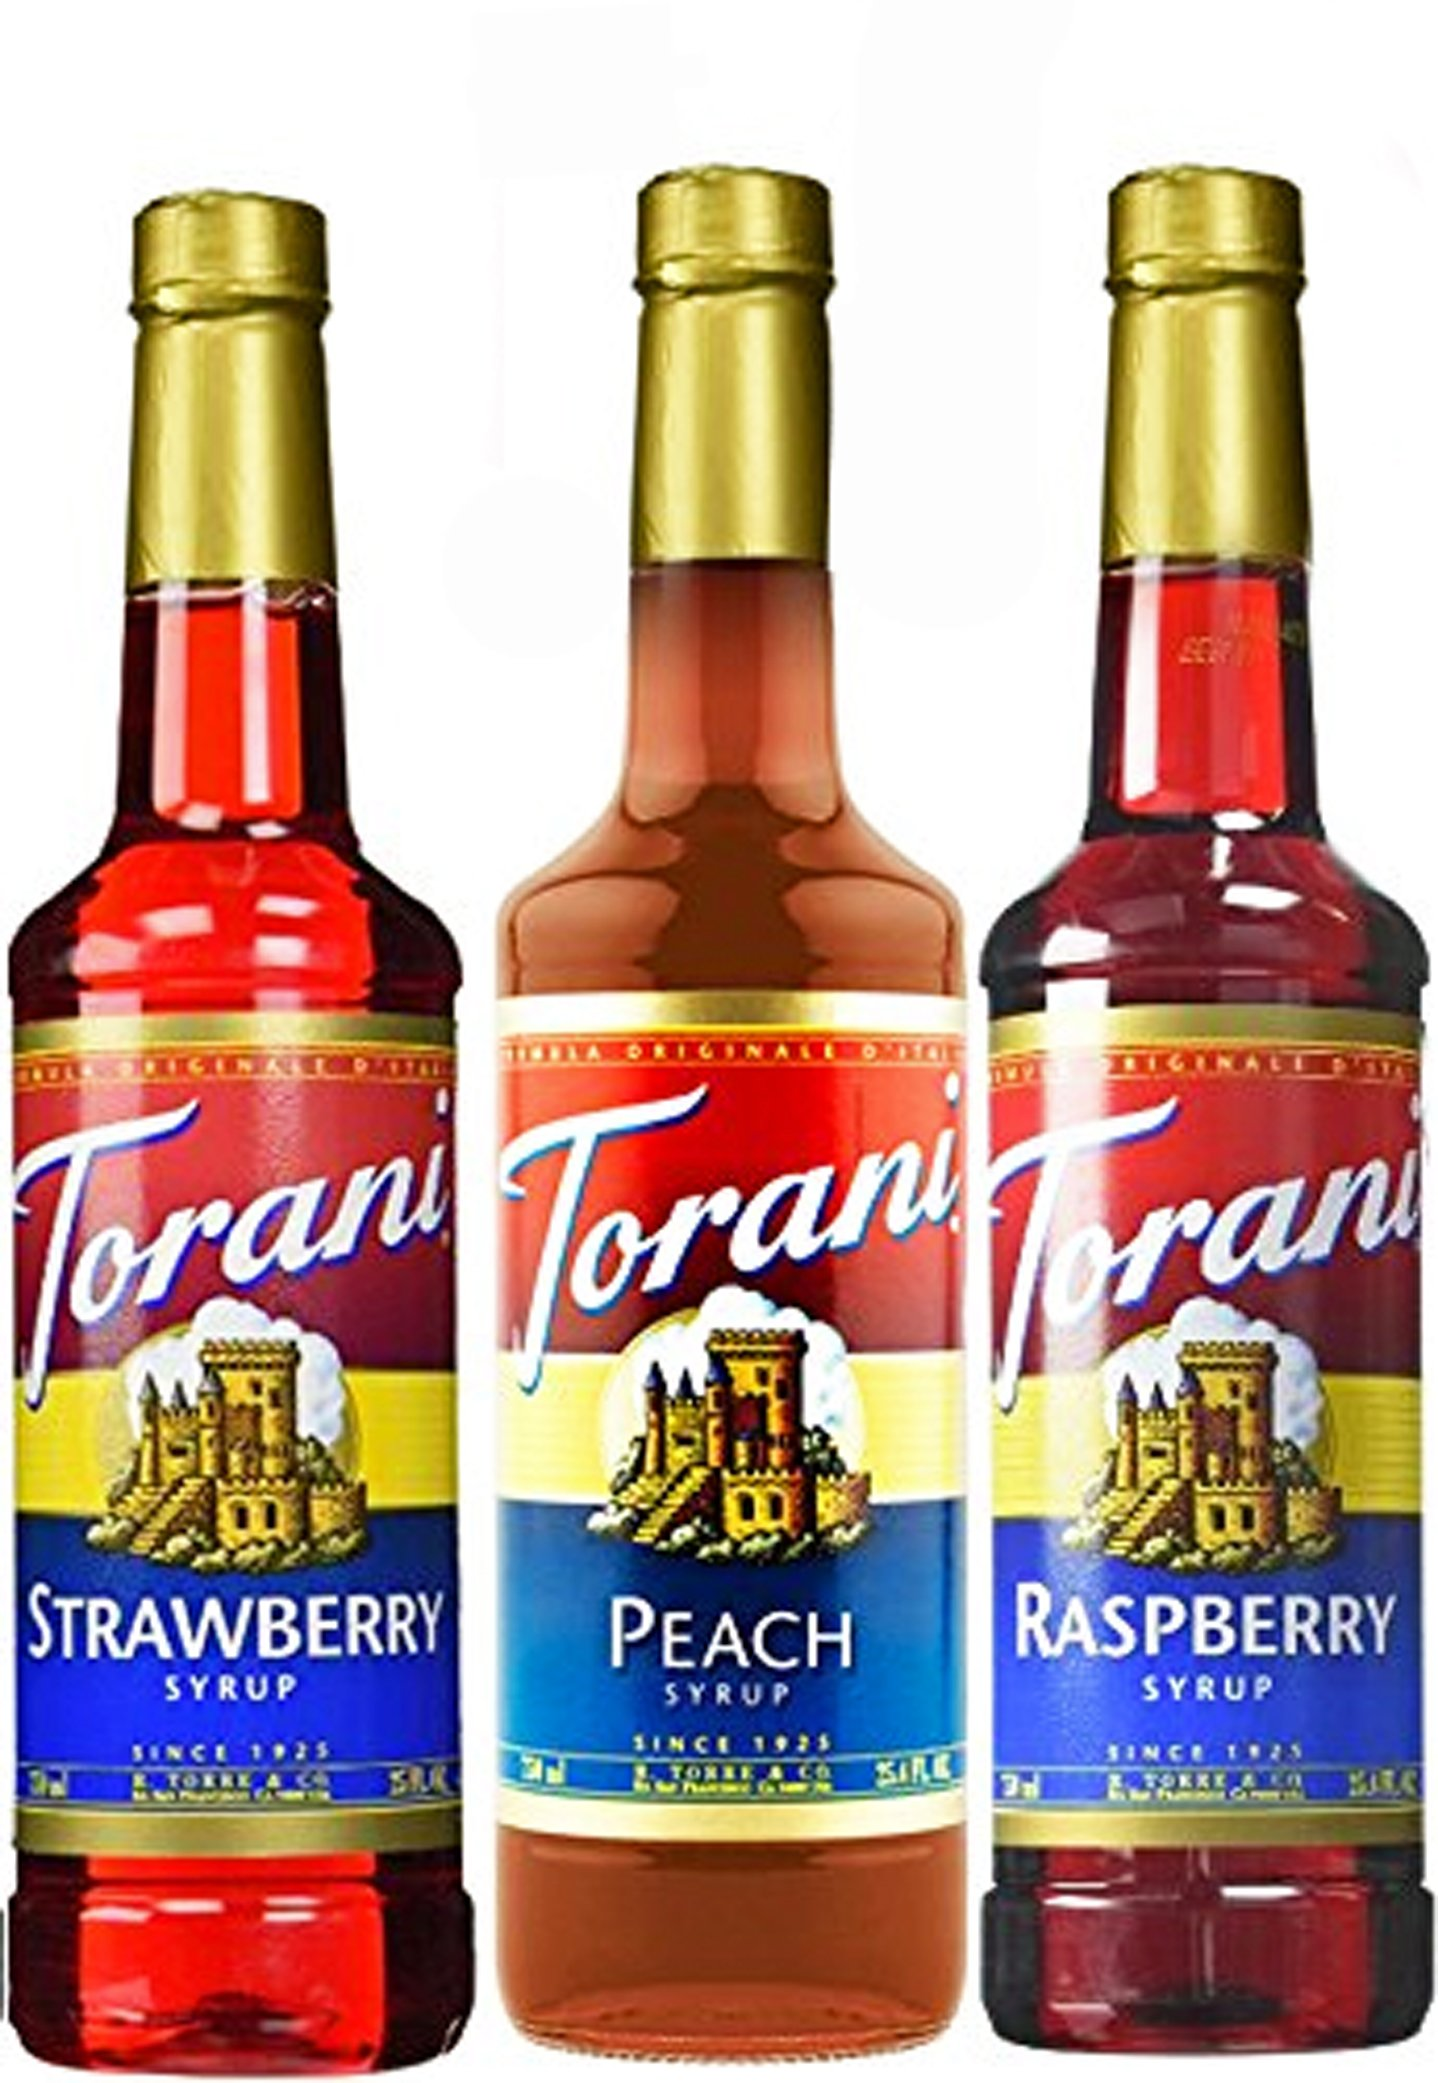 Torani Syrup Fruit Flavors 3 Pack Raspberry, Strawberry and Peach